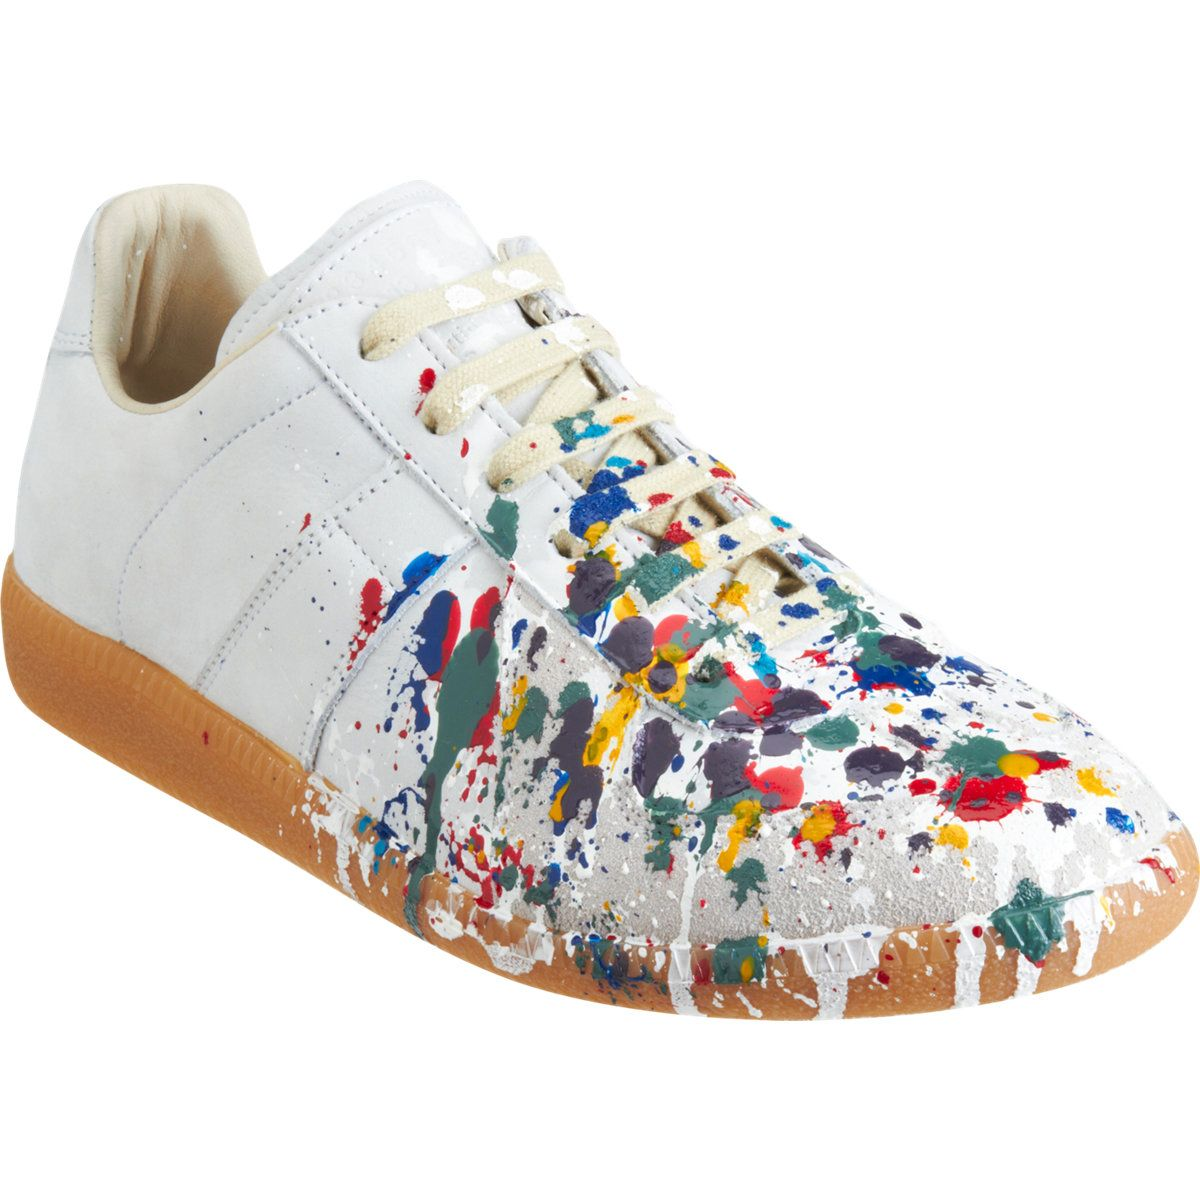 maison martin margiela line 22 paint splatter low top | yearning